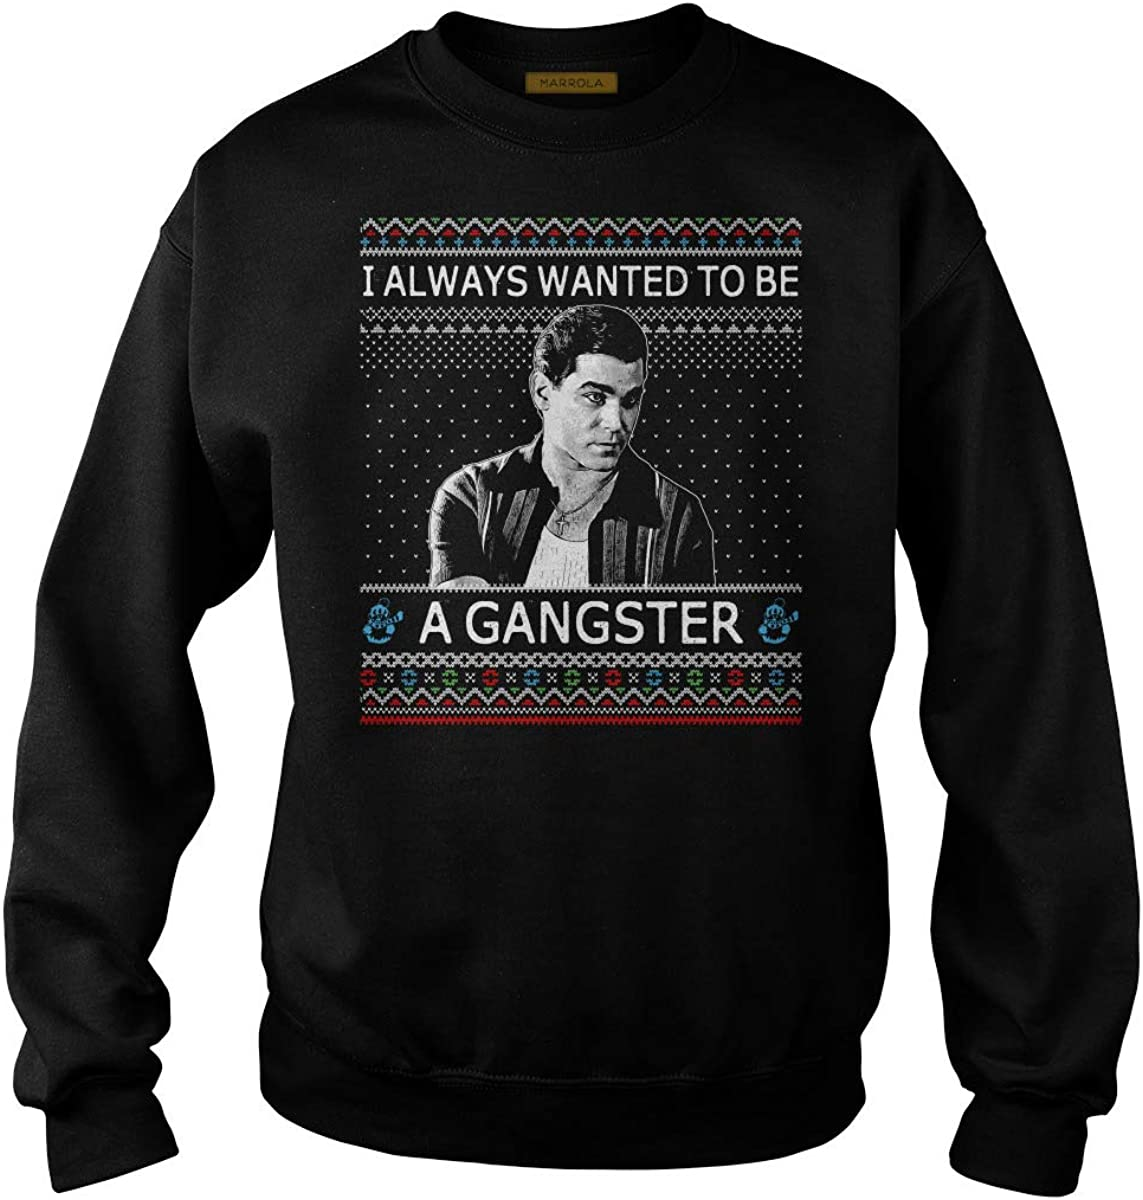 I Always Wanted to Be A Gangster Ugly Christmas T-Shirt